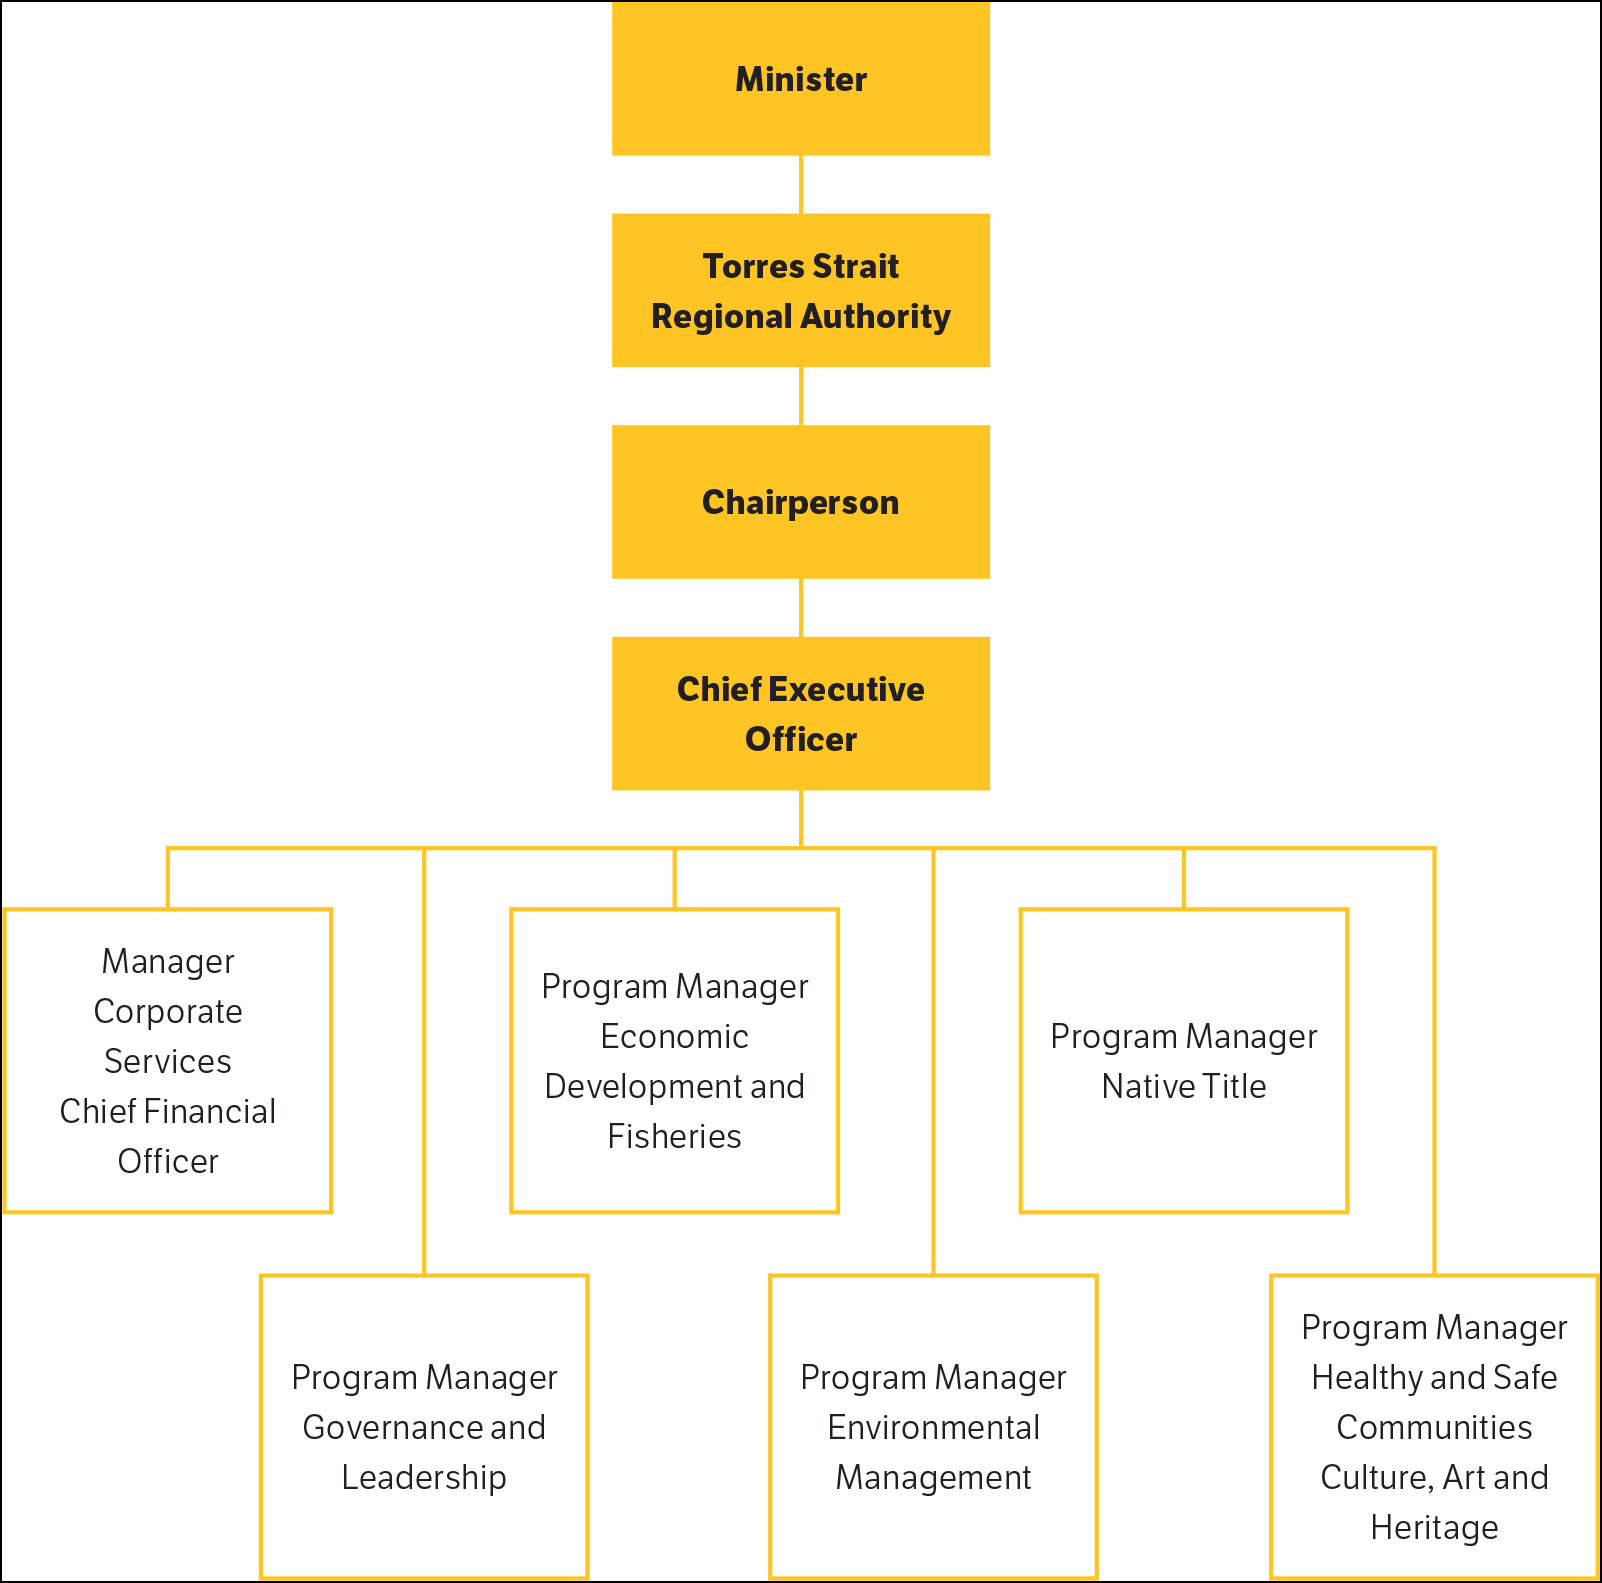 a chart showing Torres Strait Regional Authority Structure